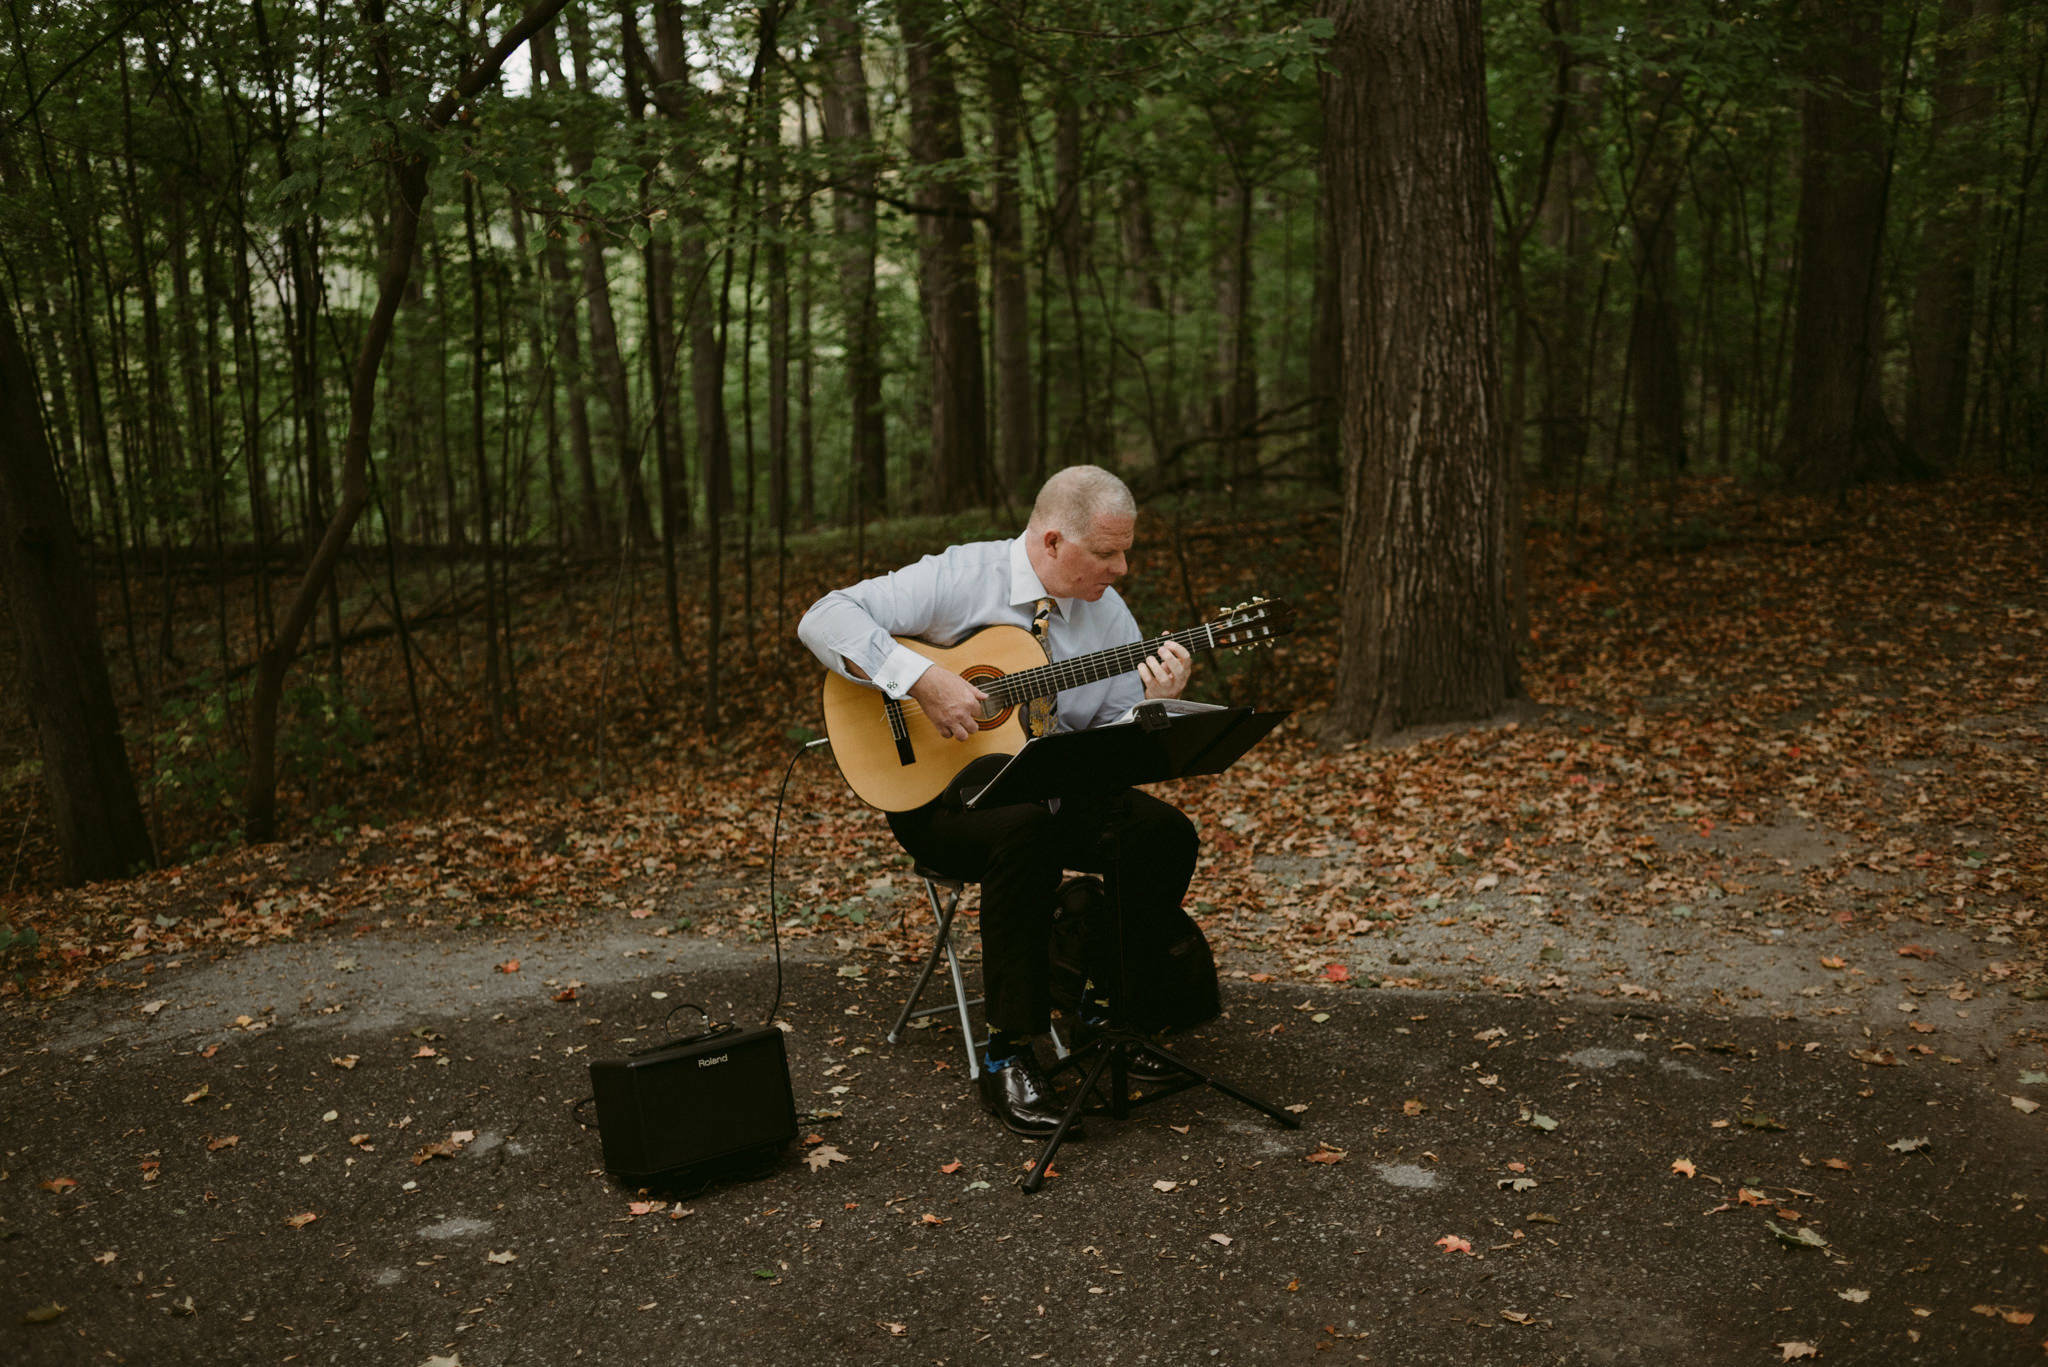 Musician playing guitar in forest before ceremony